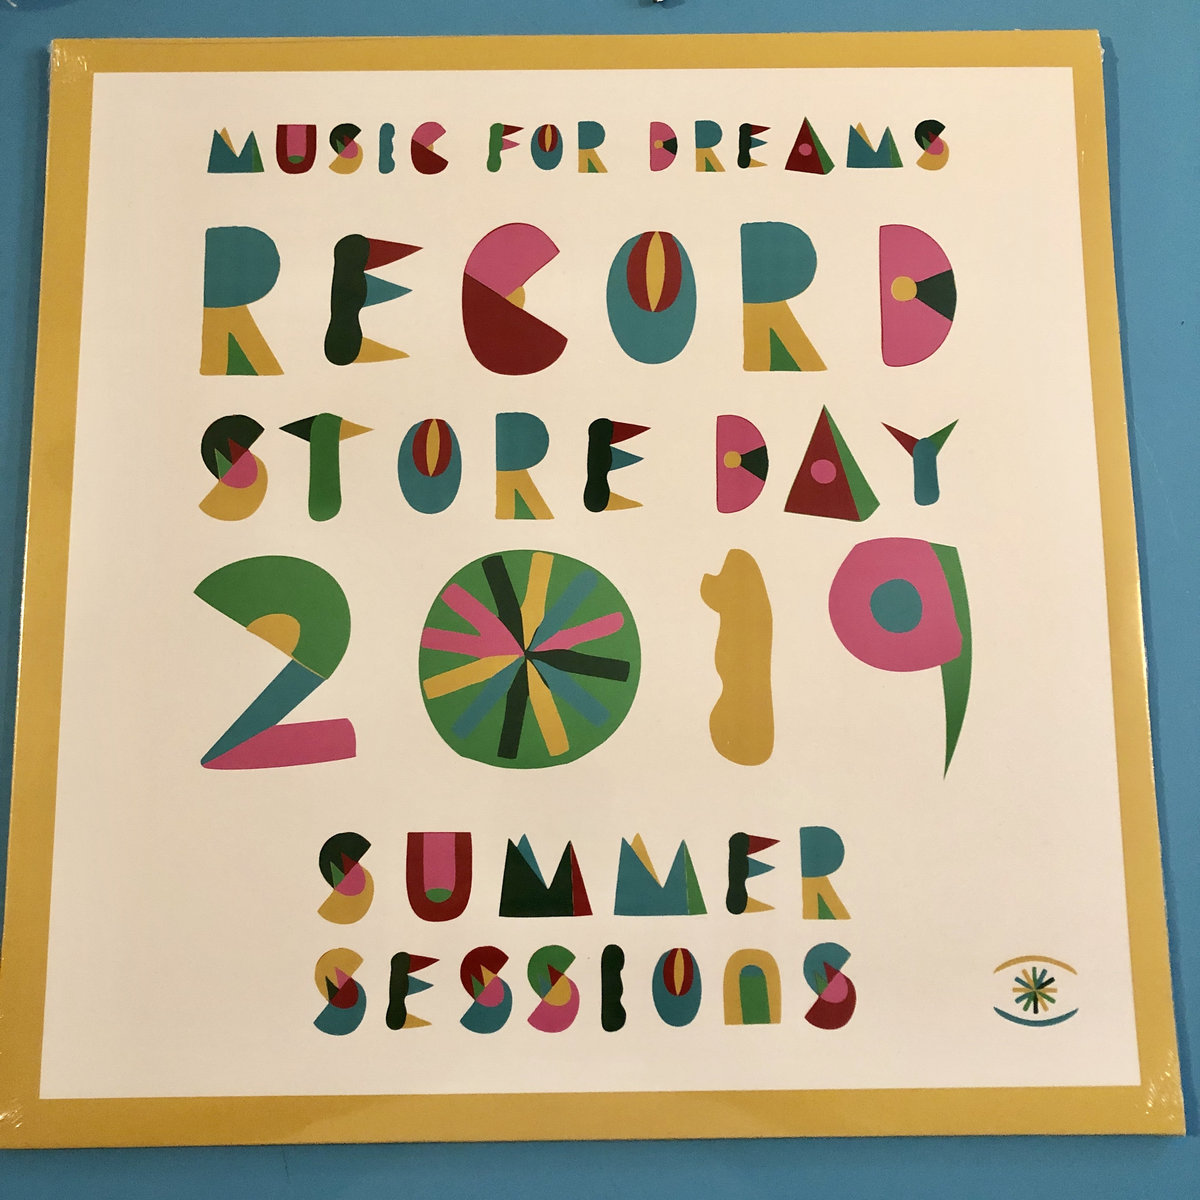 Record Store Day 2019 - Summer Sessions | Music For Dreams